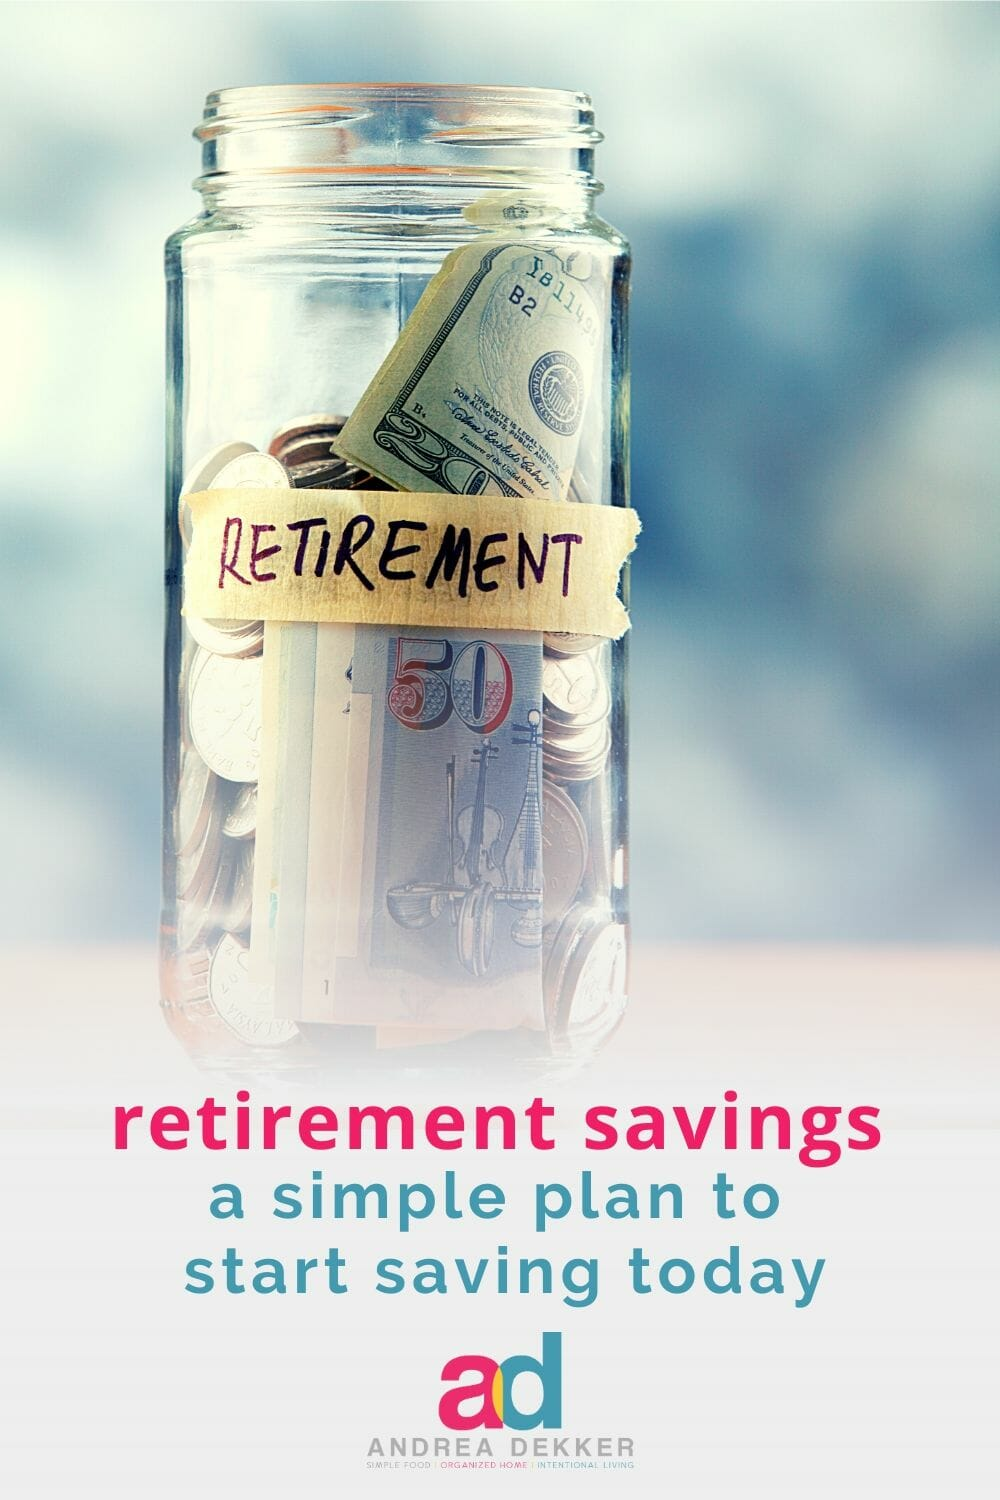 Do you feel overwhelmed with retirement savings? Use these super simple tips and practical advice to start saving for retirement today!  via @andreadekker